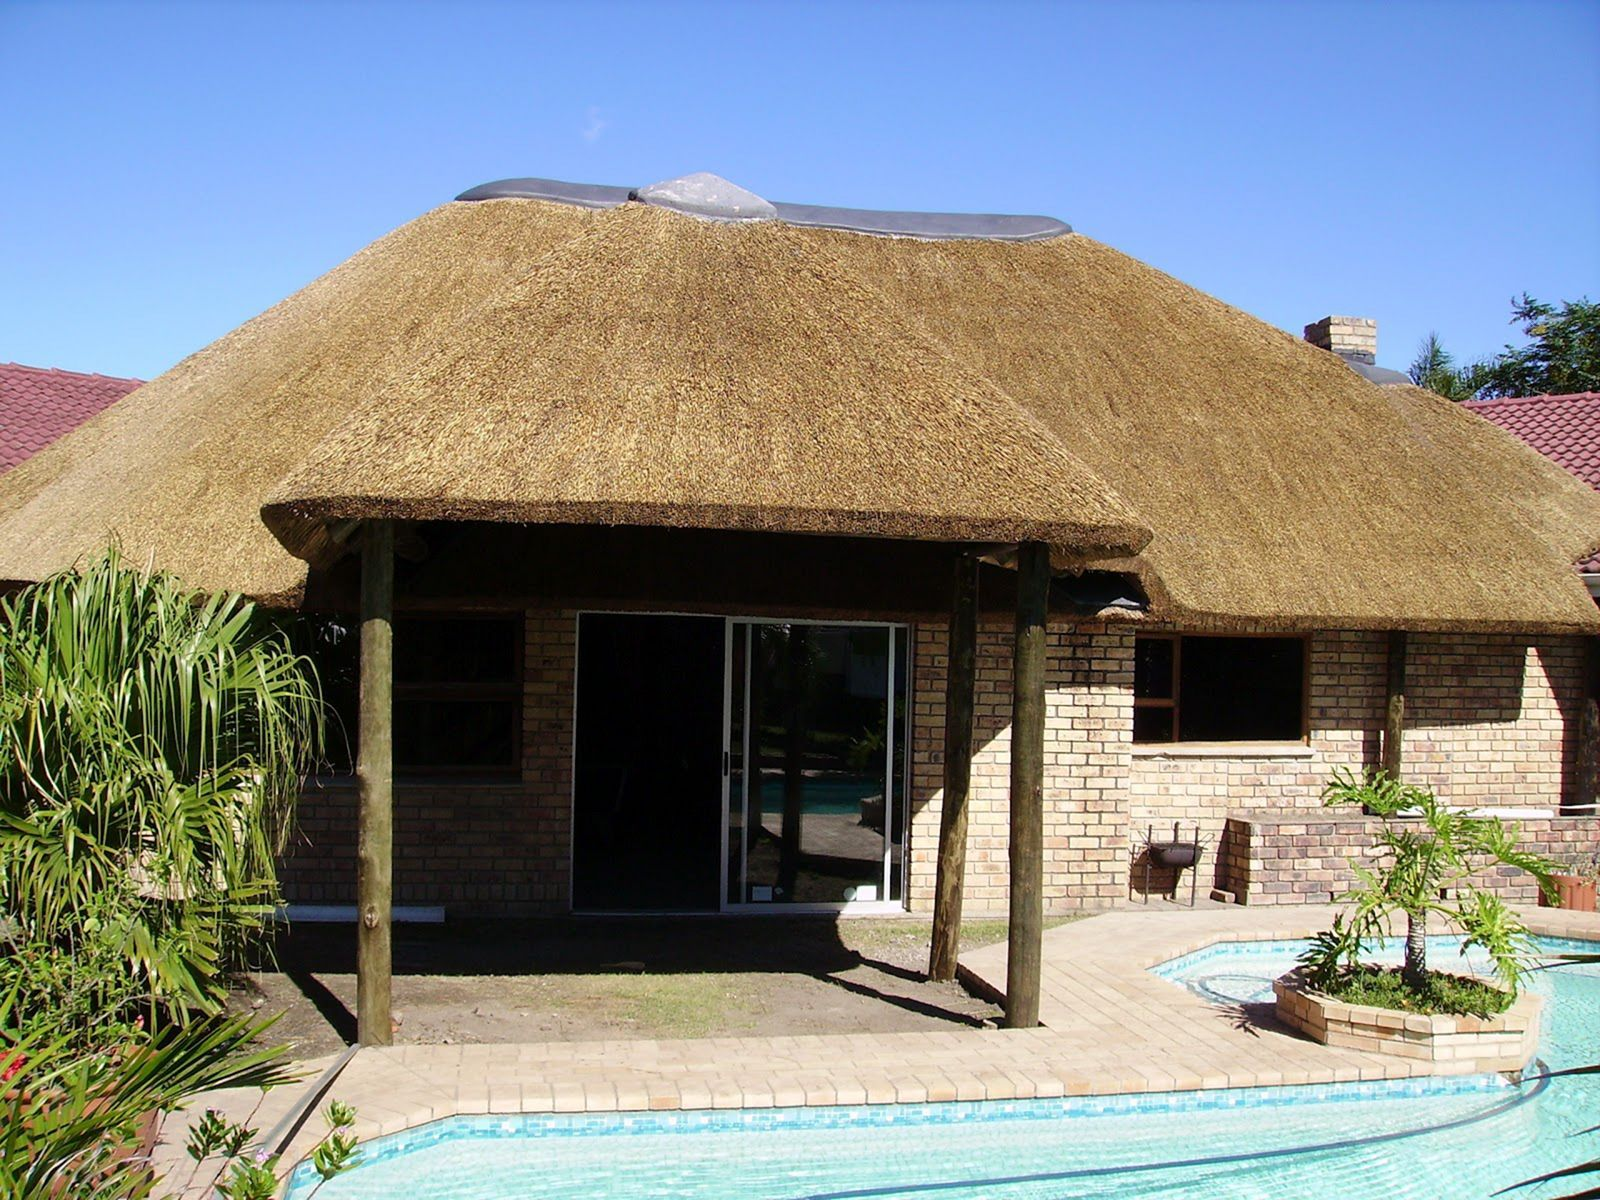 Nice 20 Fantastic Small House Design Ideas With Thatched Roof Https Hroomy Com Building Architecture 20 Fant Mud House Best Small House Designs Thatched Roof